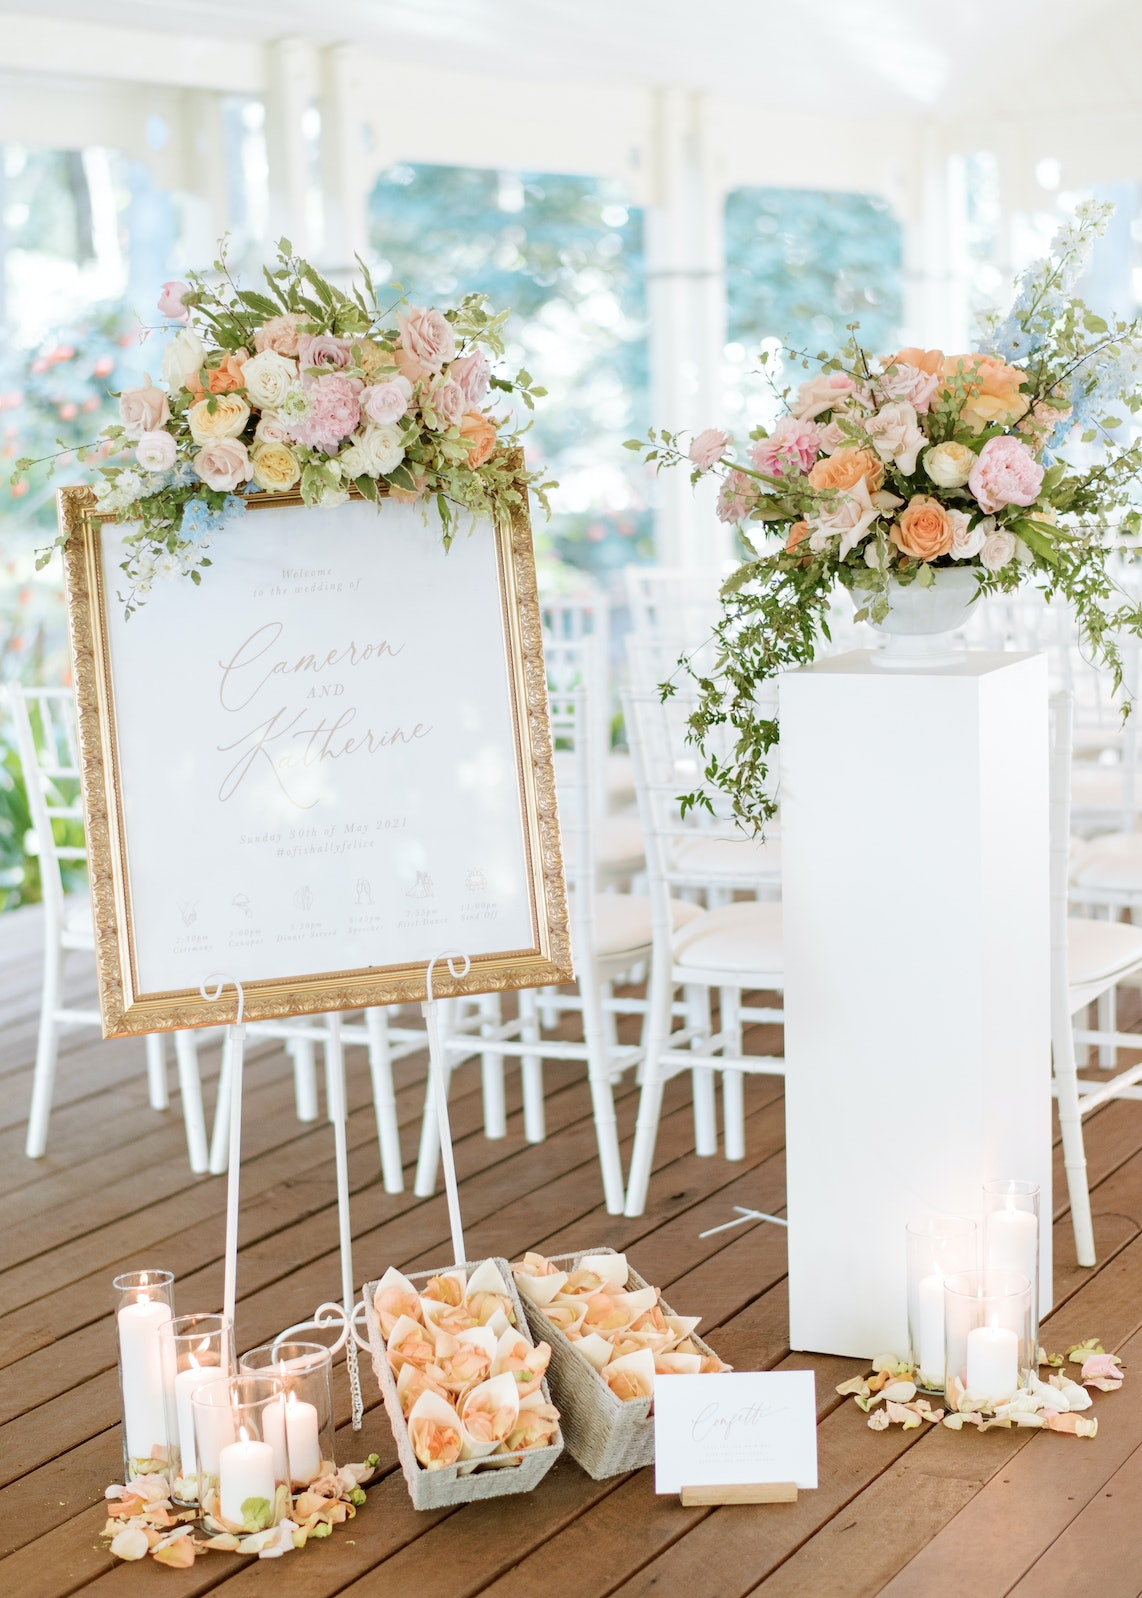 Wedding ceremony set with flowers and welcome signs